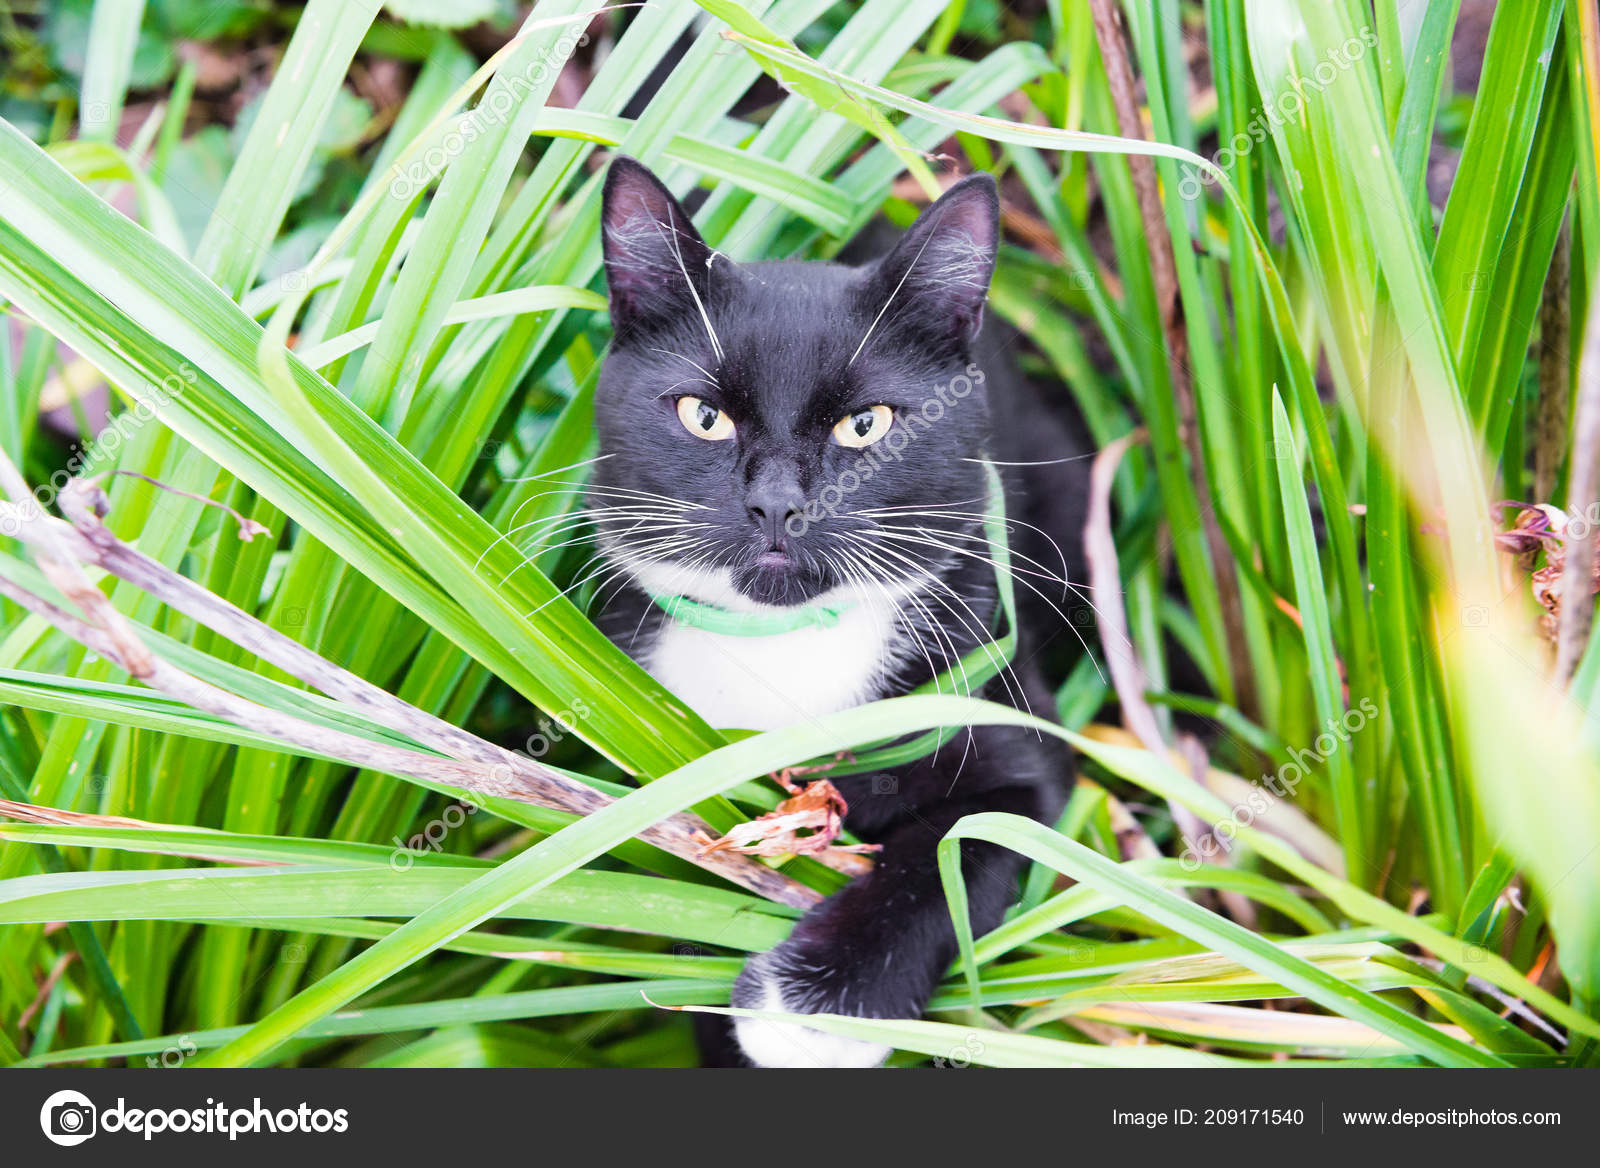 1599f19e1 Cute black and white cat in the grass — Stock Photo © Pike-28 #209171540